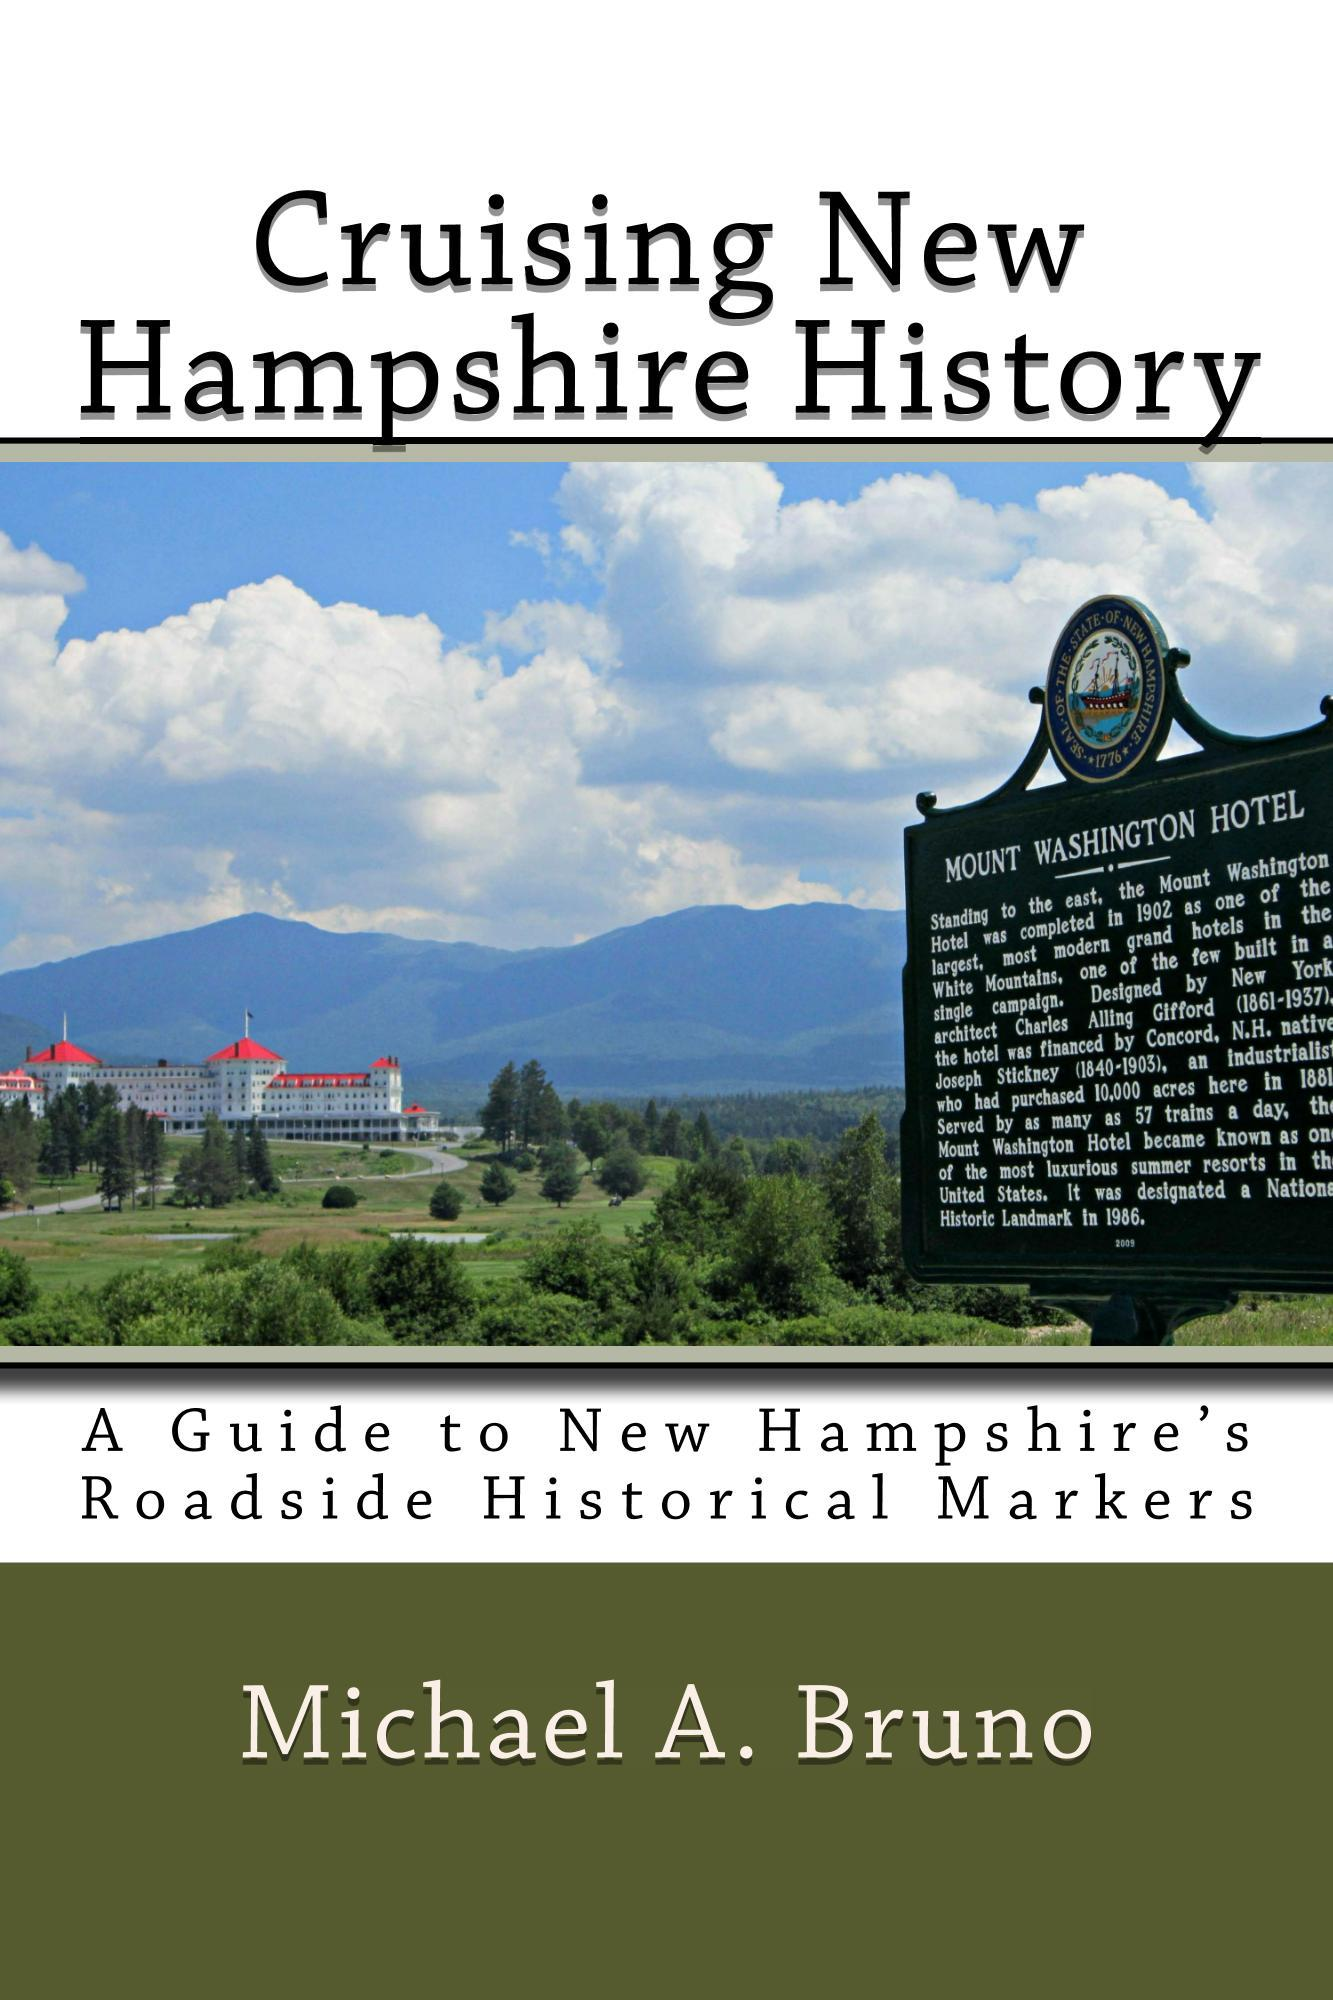 Cruising New Hampshire History: A Guide to New Hampshire's Roadside Historical Markers by Michael A. Bruno, book jacket, shows Mount Washington Hotel and a historical marker about it